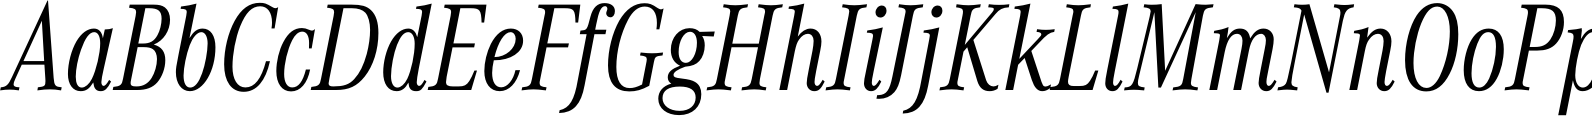 Corporate A Condensed Light Italic Font